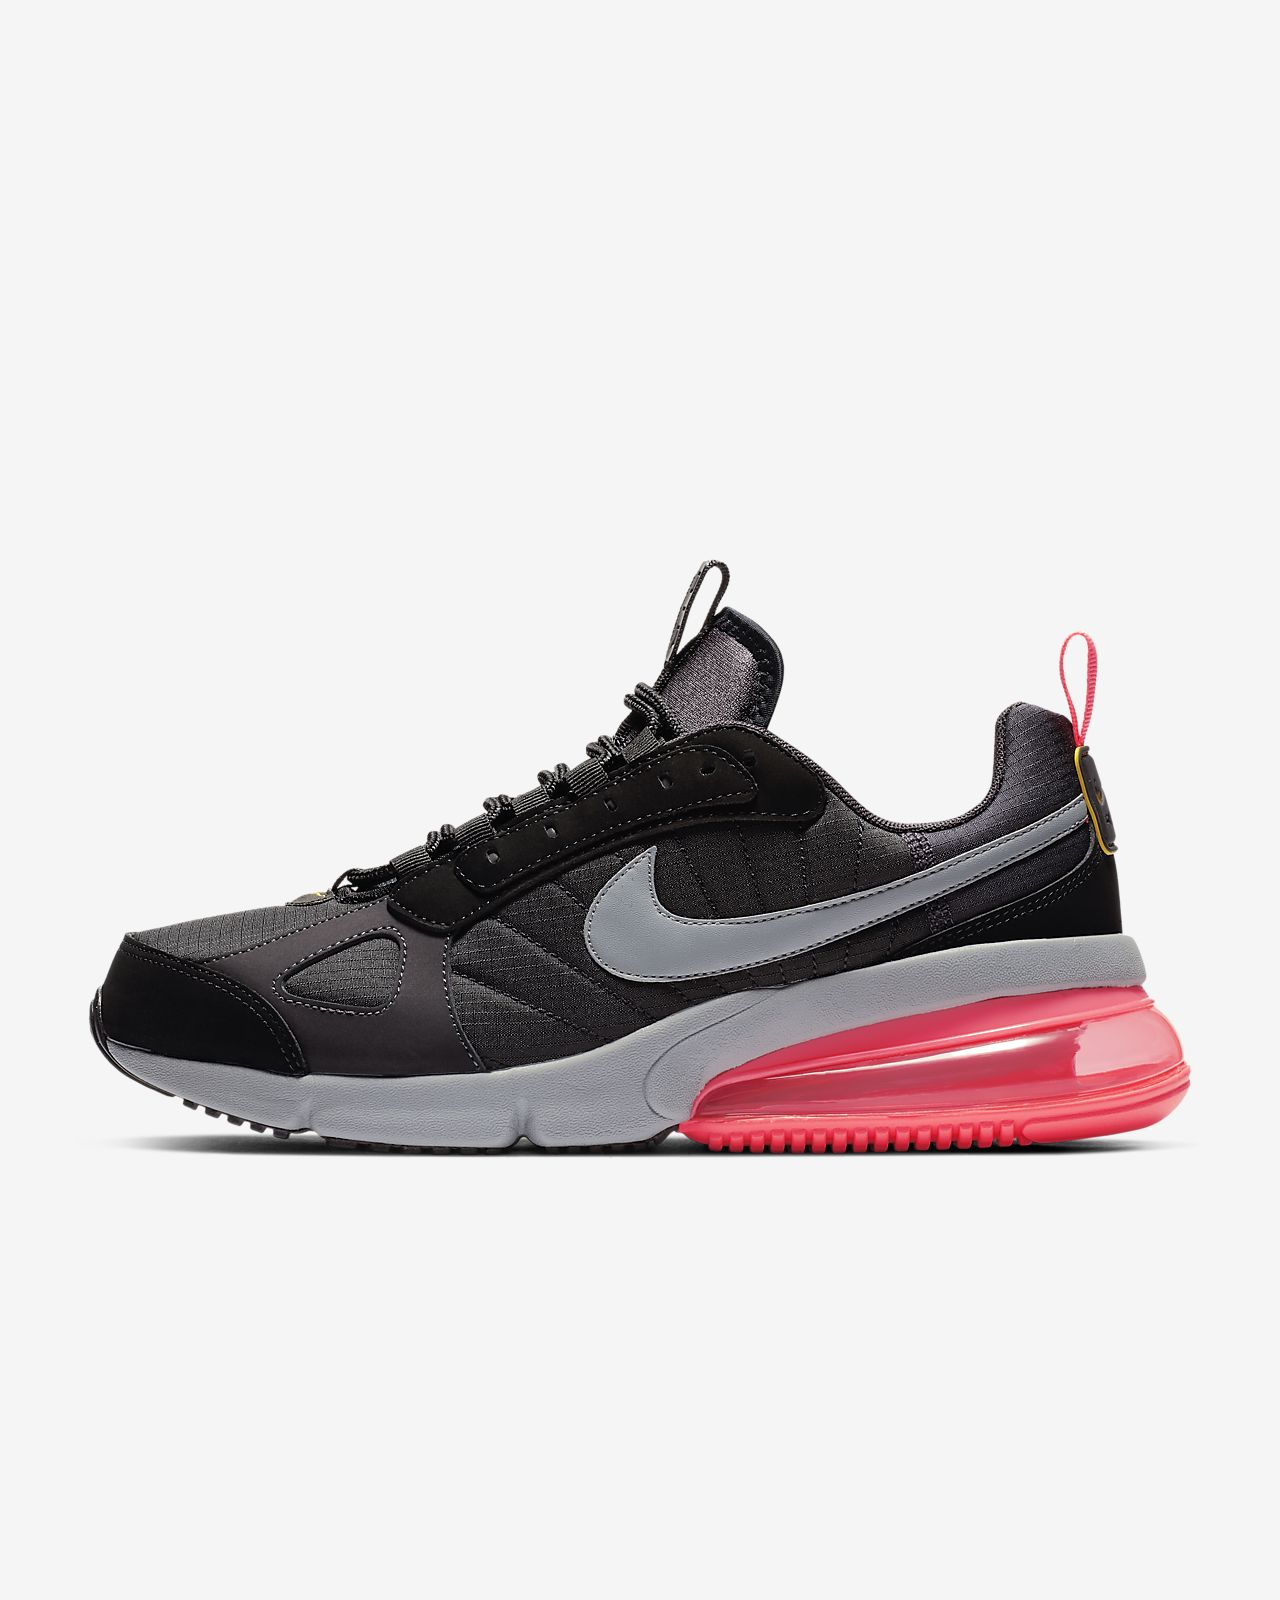 finest selection eef9b 82fa2 ... Chaussure Nike Air Max 270 Futura pour Homme